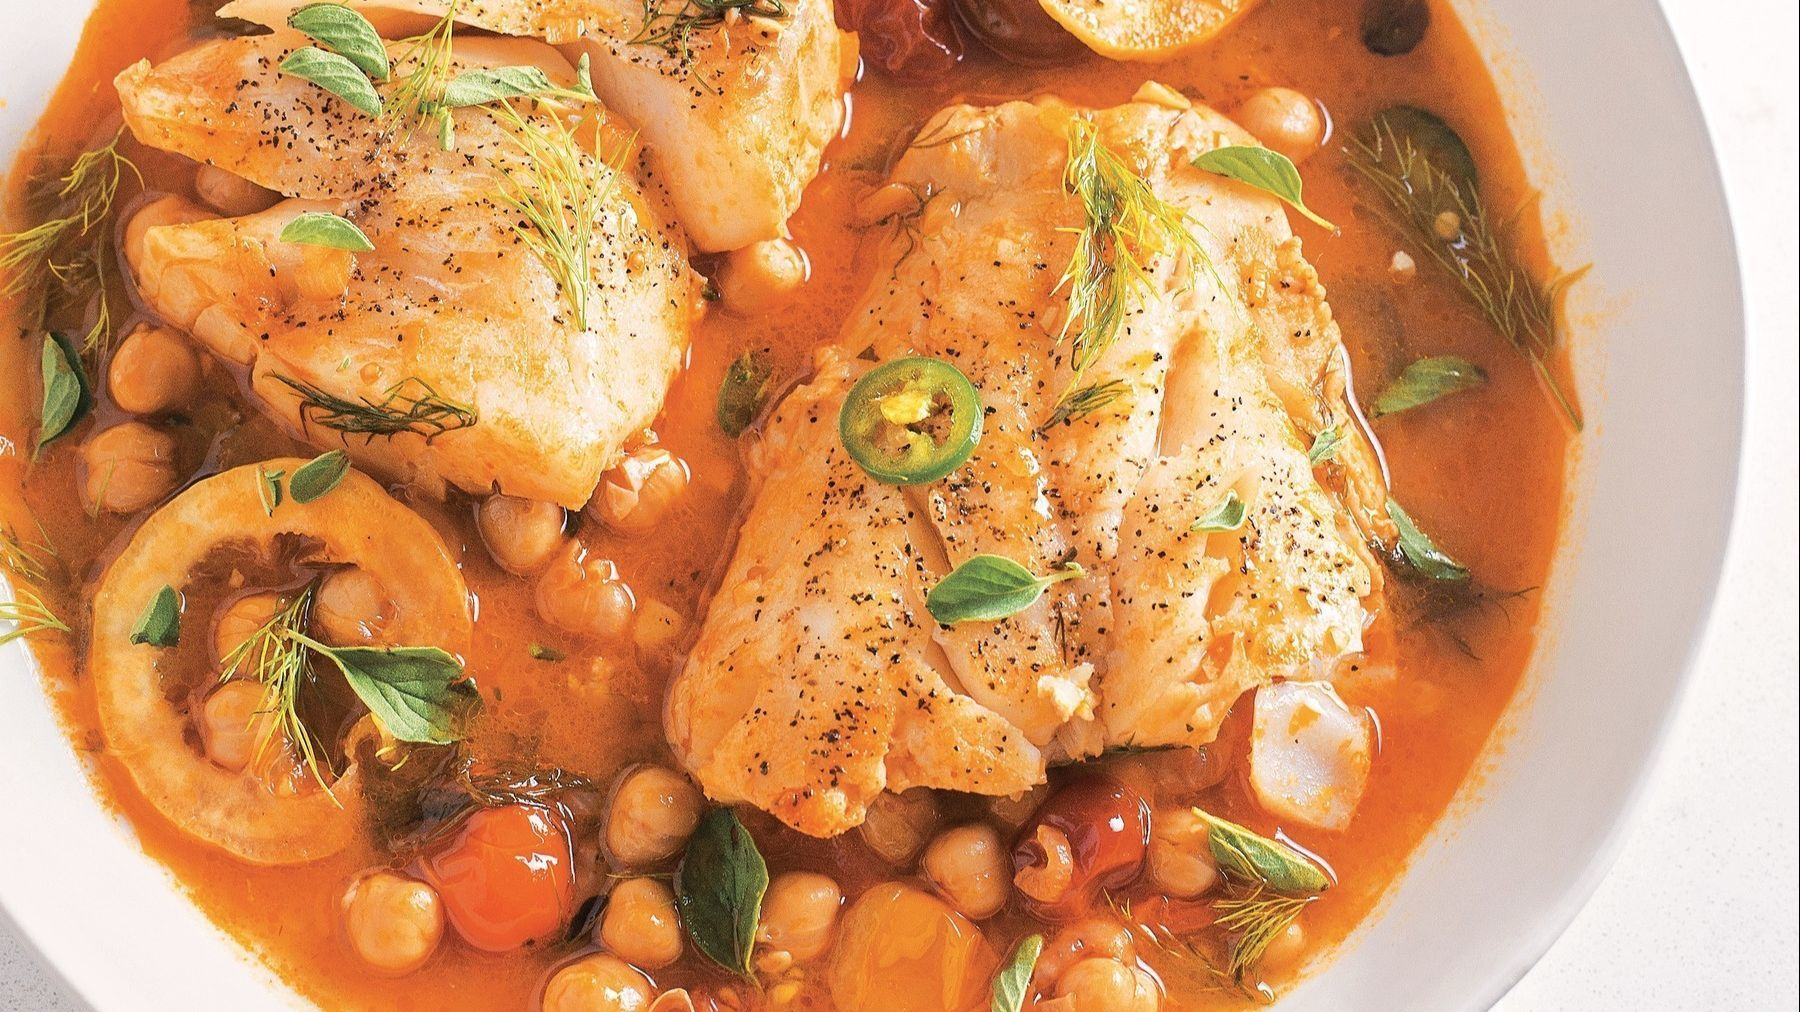 Blend of cultures inspired poached fish dish